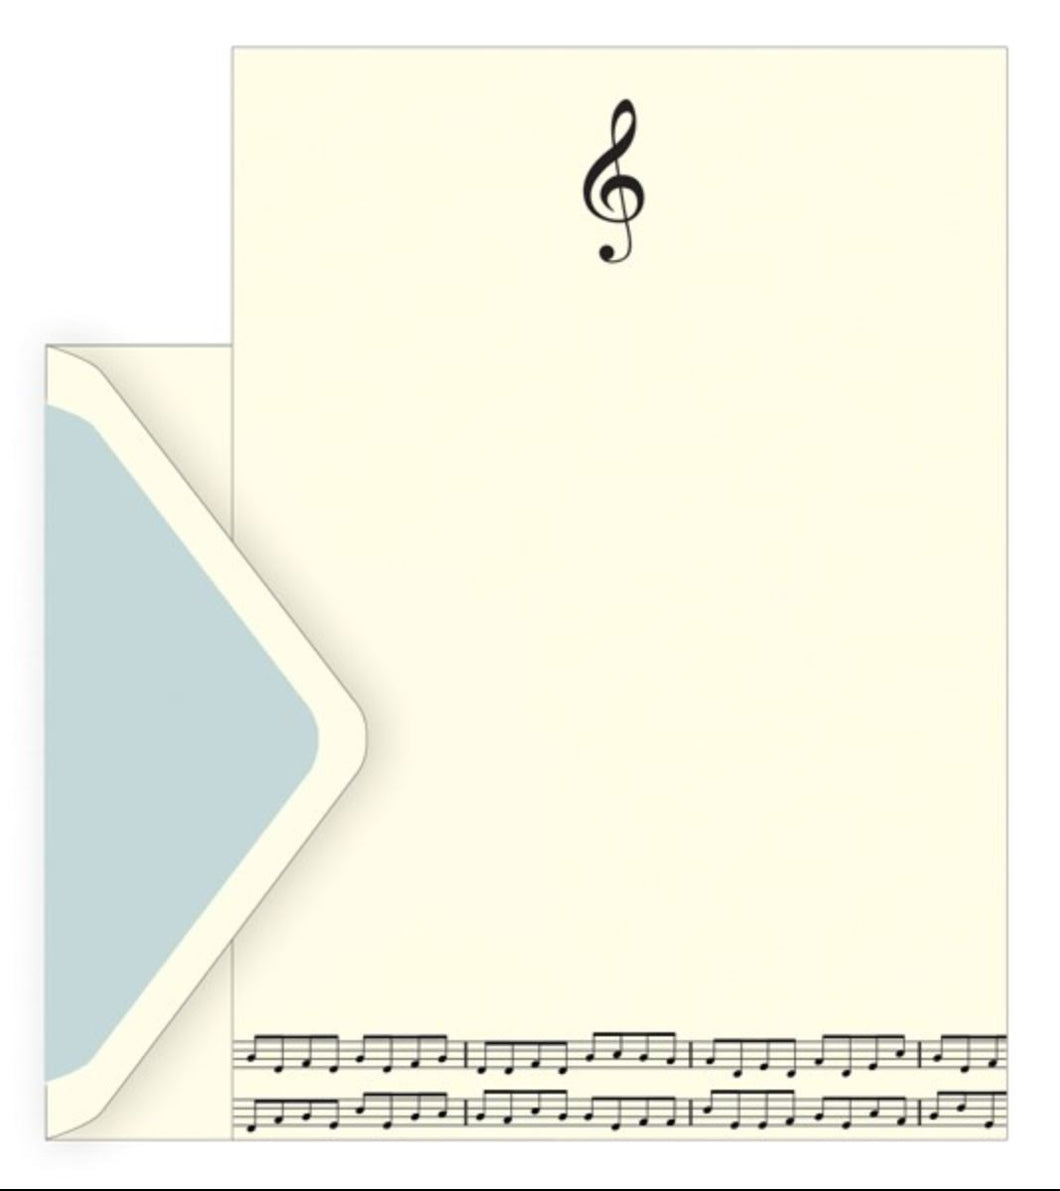 Music Note - Schmidt's Papeterie